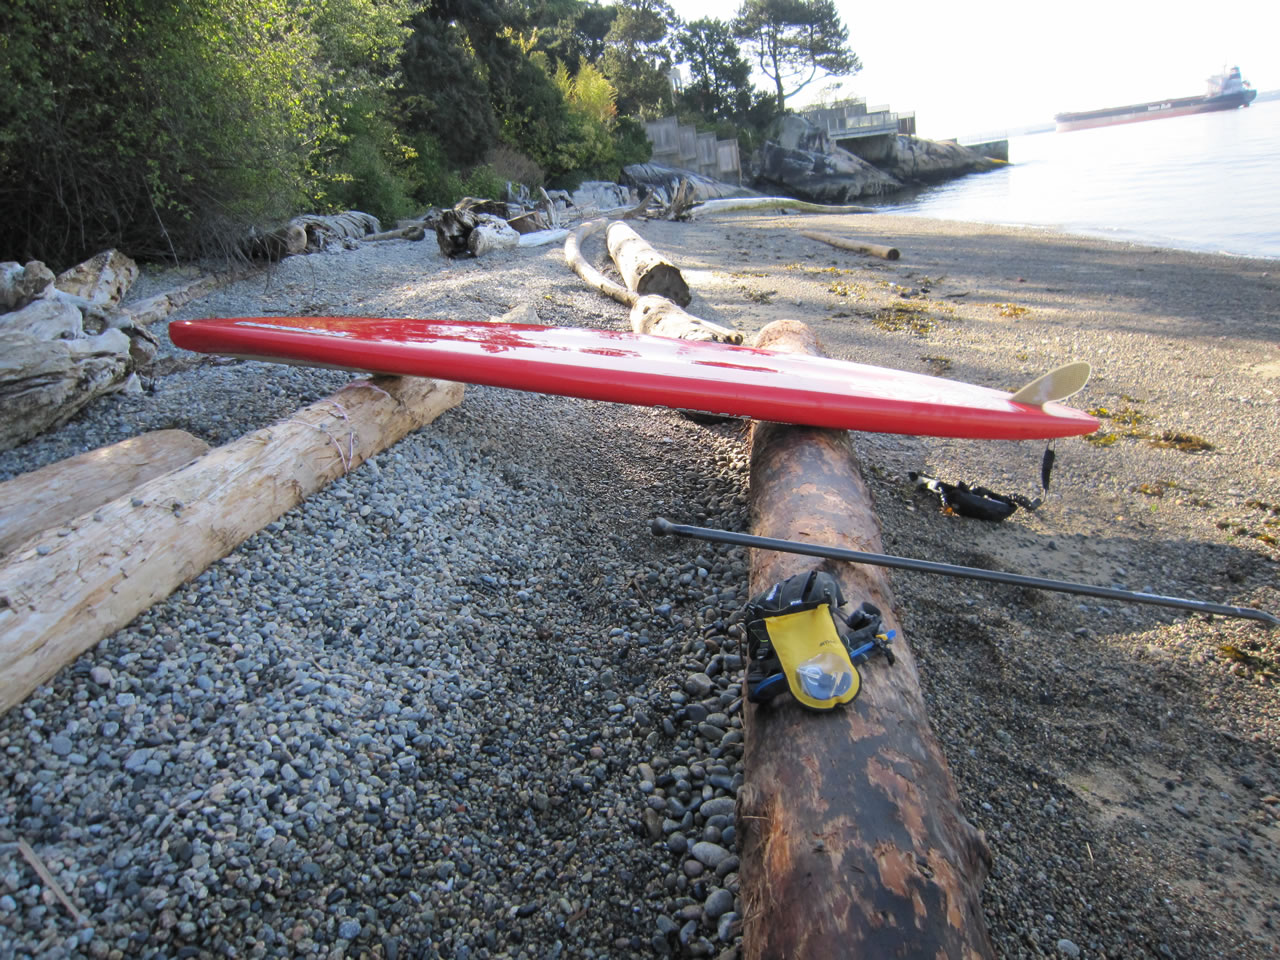 starboard-touring-standup-paddleboard-12-609